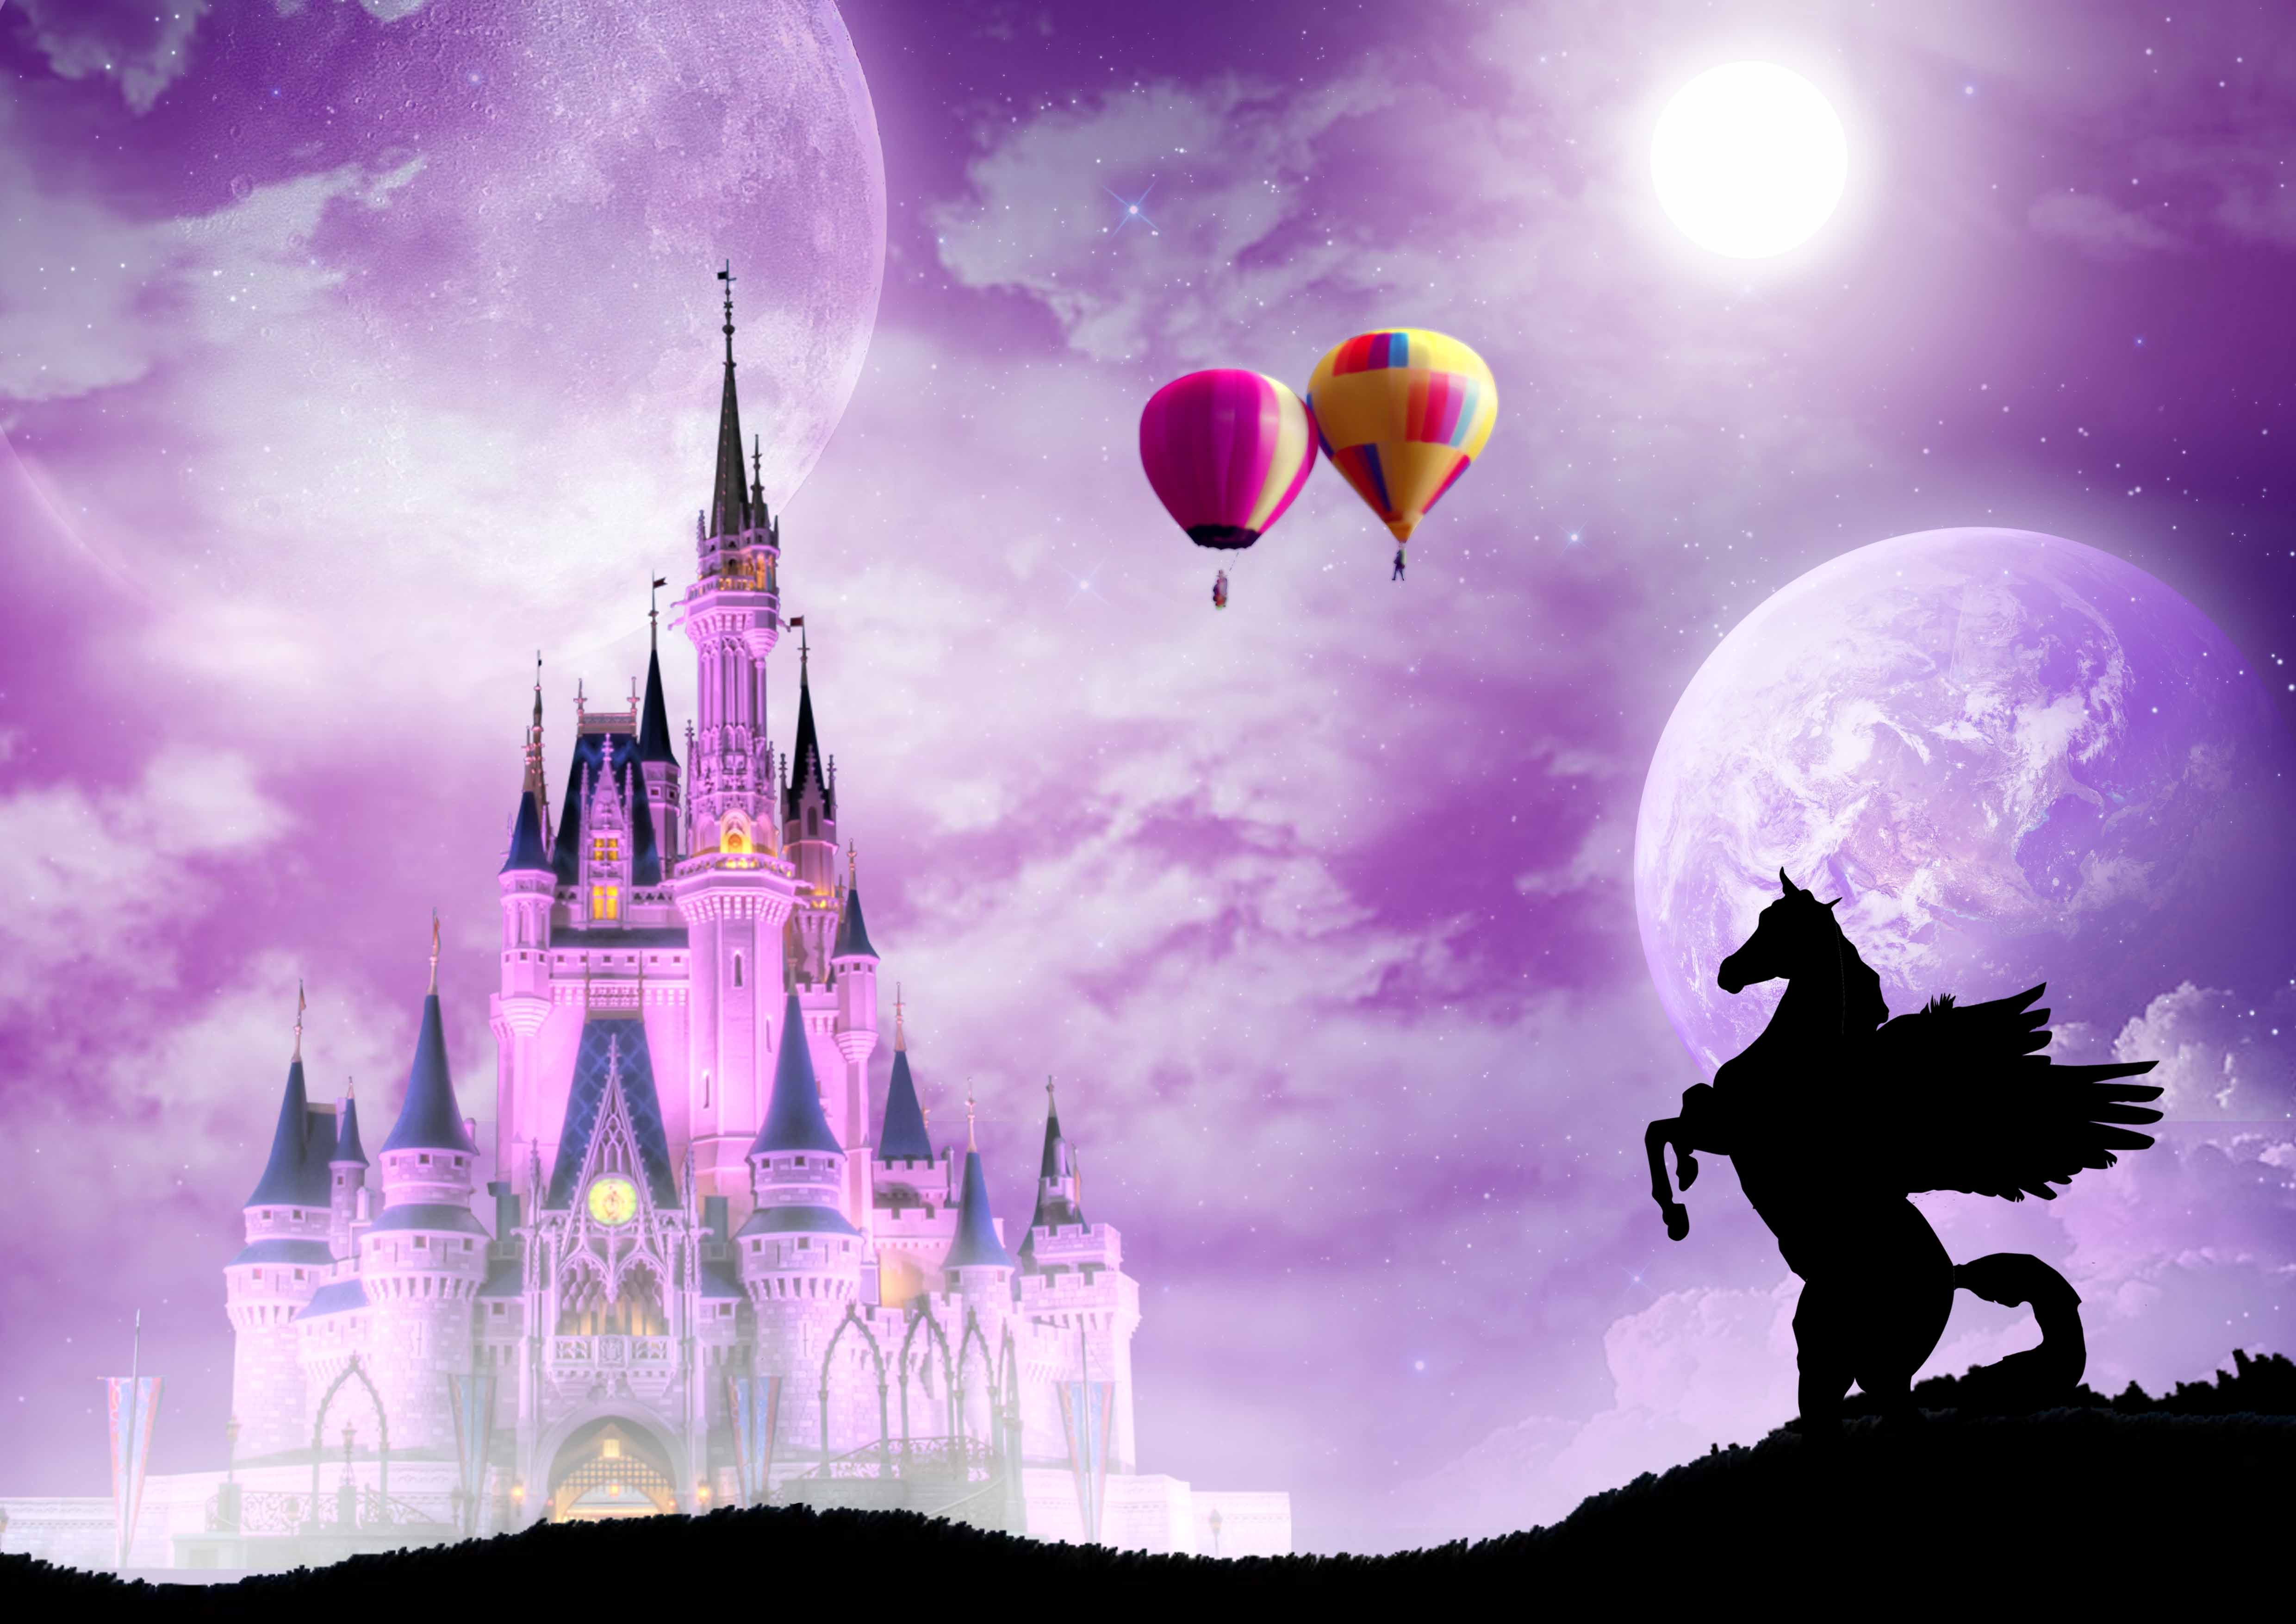 Fairy Tale Backgrounds Wallpaper Cave HD Wallpapers Download Free Images Wallpaper [1000image.com]